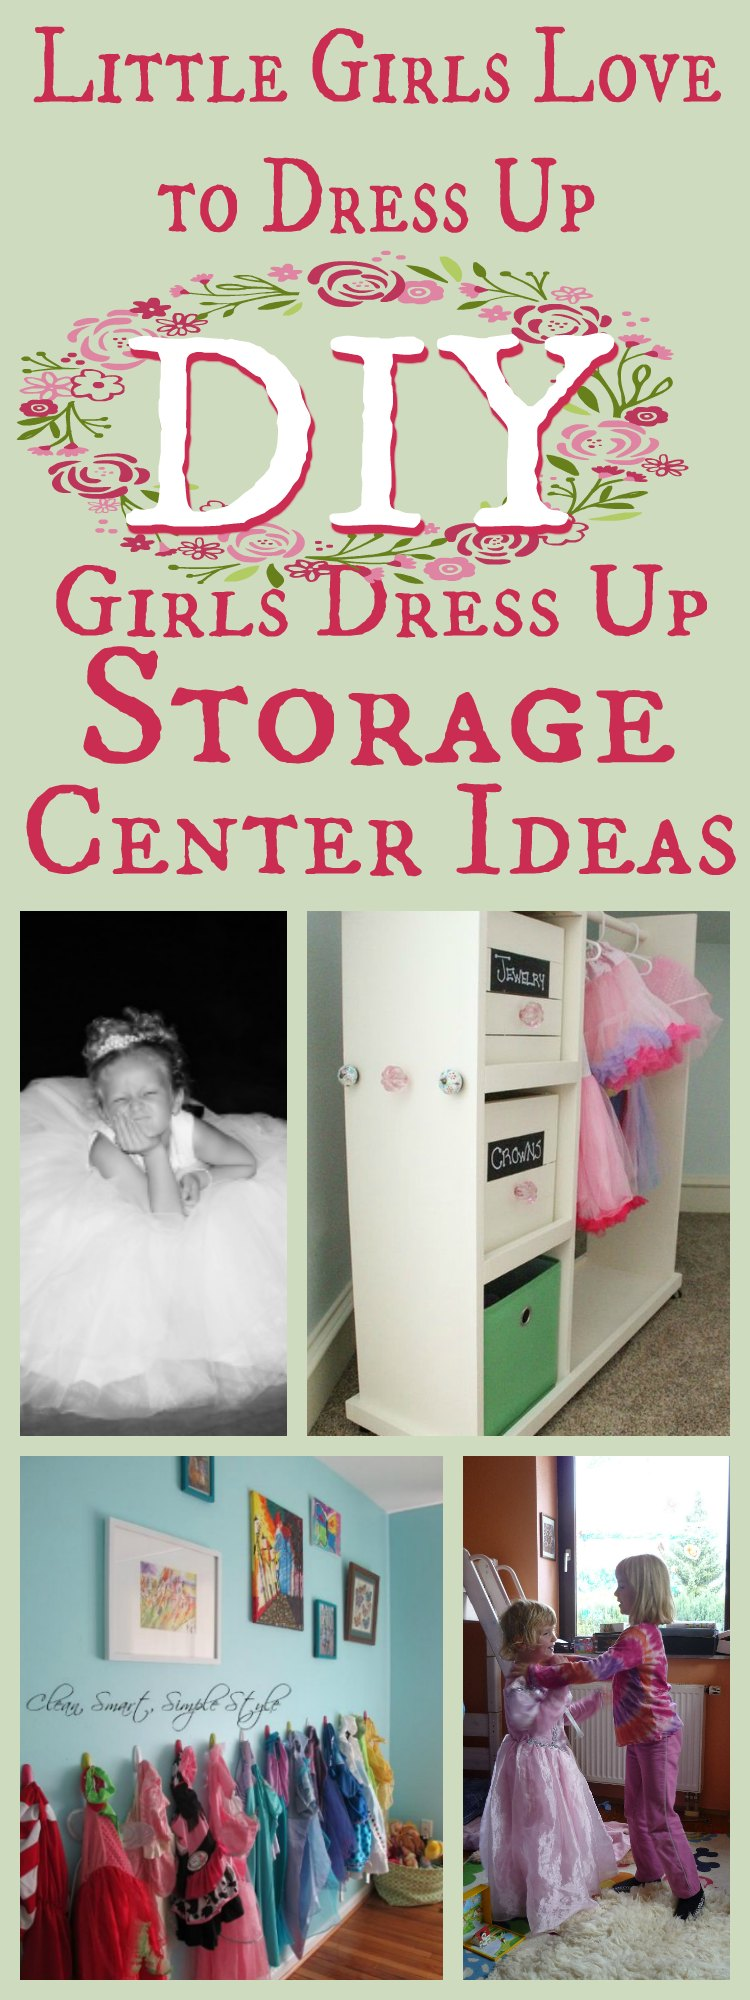 Girls Dress UP Storage Center Ideas